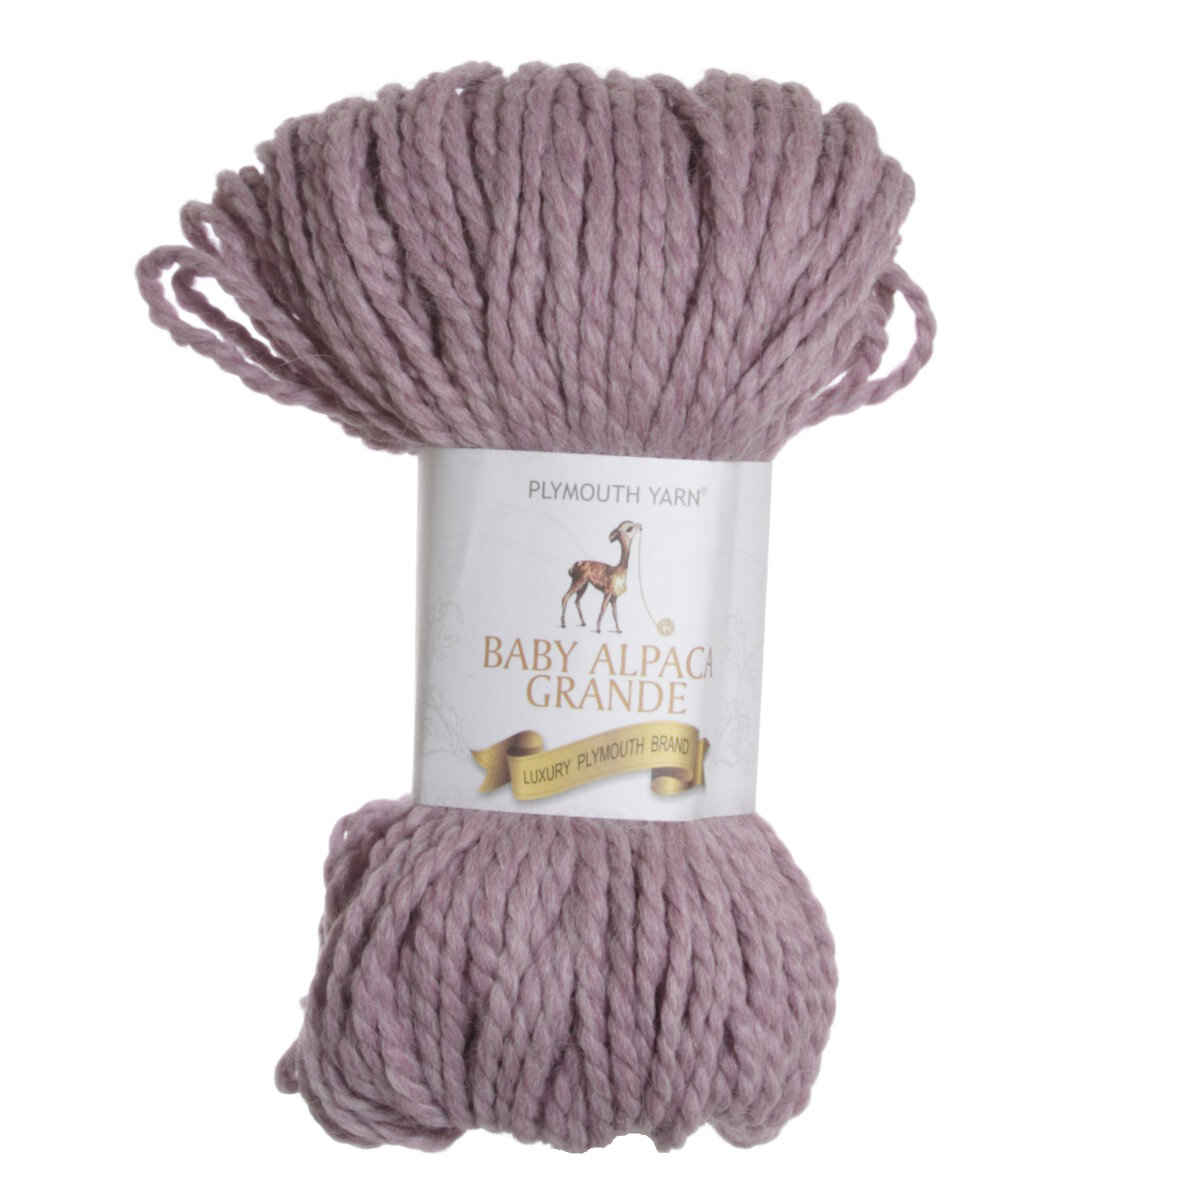 Best of Nature Classic Solid Chunky Cotton Gradient Yarns Collection Hand Paint Hand Paint Tone on Tone Yarn on Cone